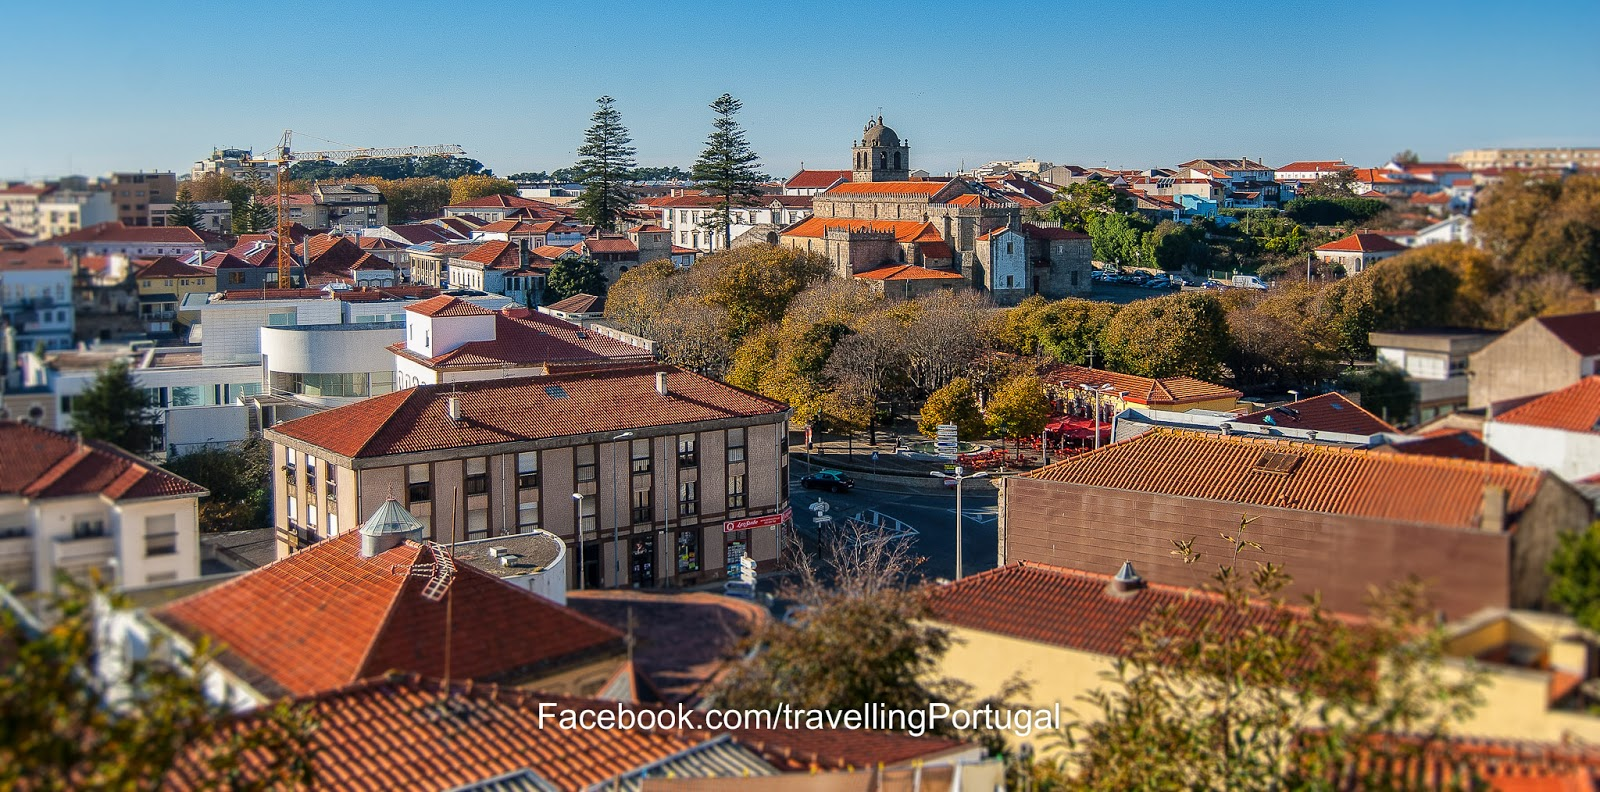 vila do conde guys Information about port of vila do conde (brazil): port location, harbor characteristics, water depth, port services, restrictions etc.